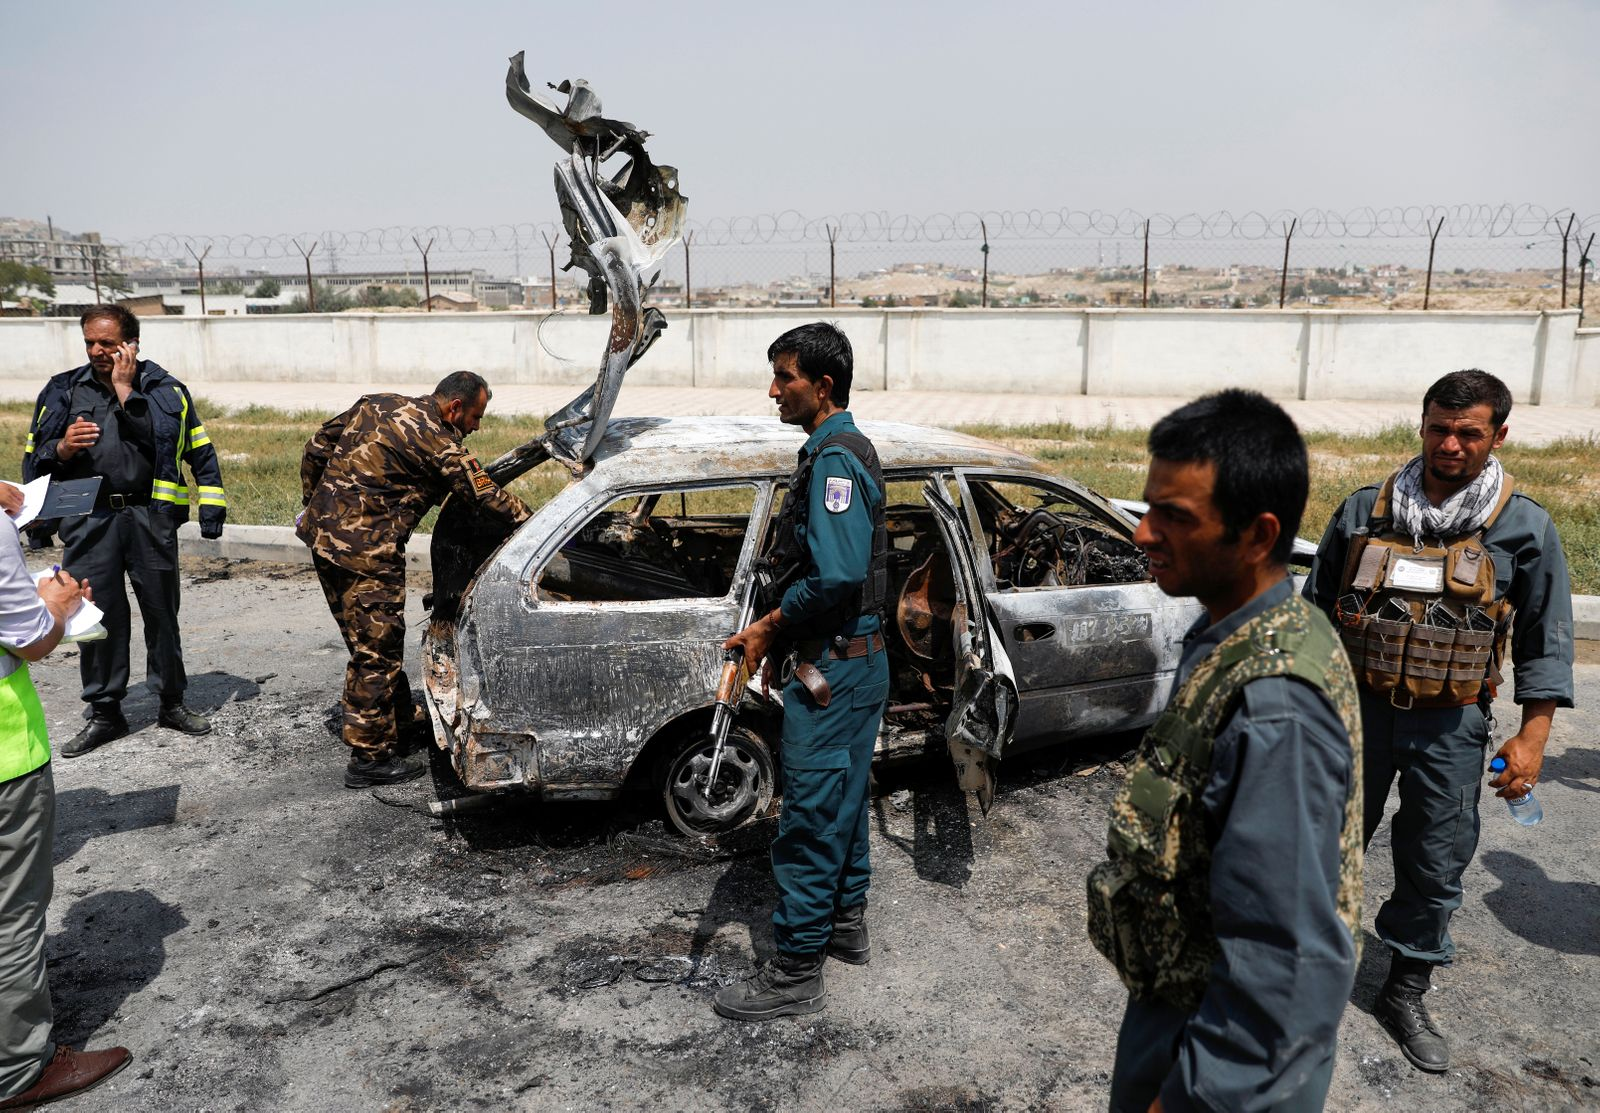 Afghan police officers inspect a vehicle from which insurgents fired rockets, in Kabul